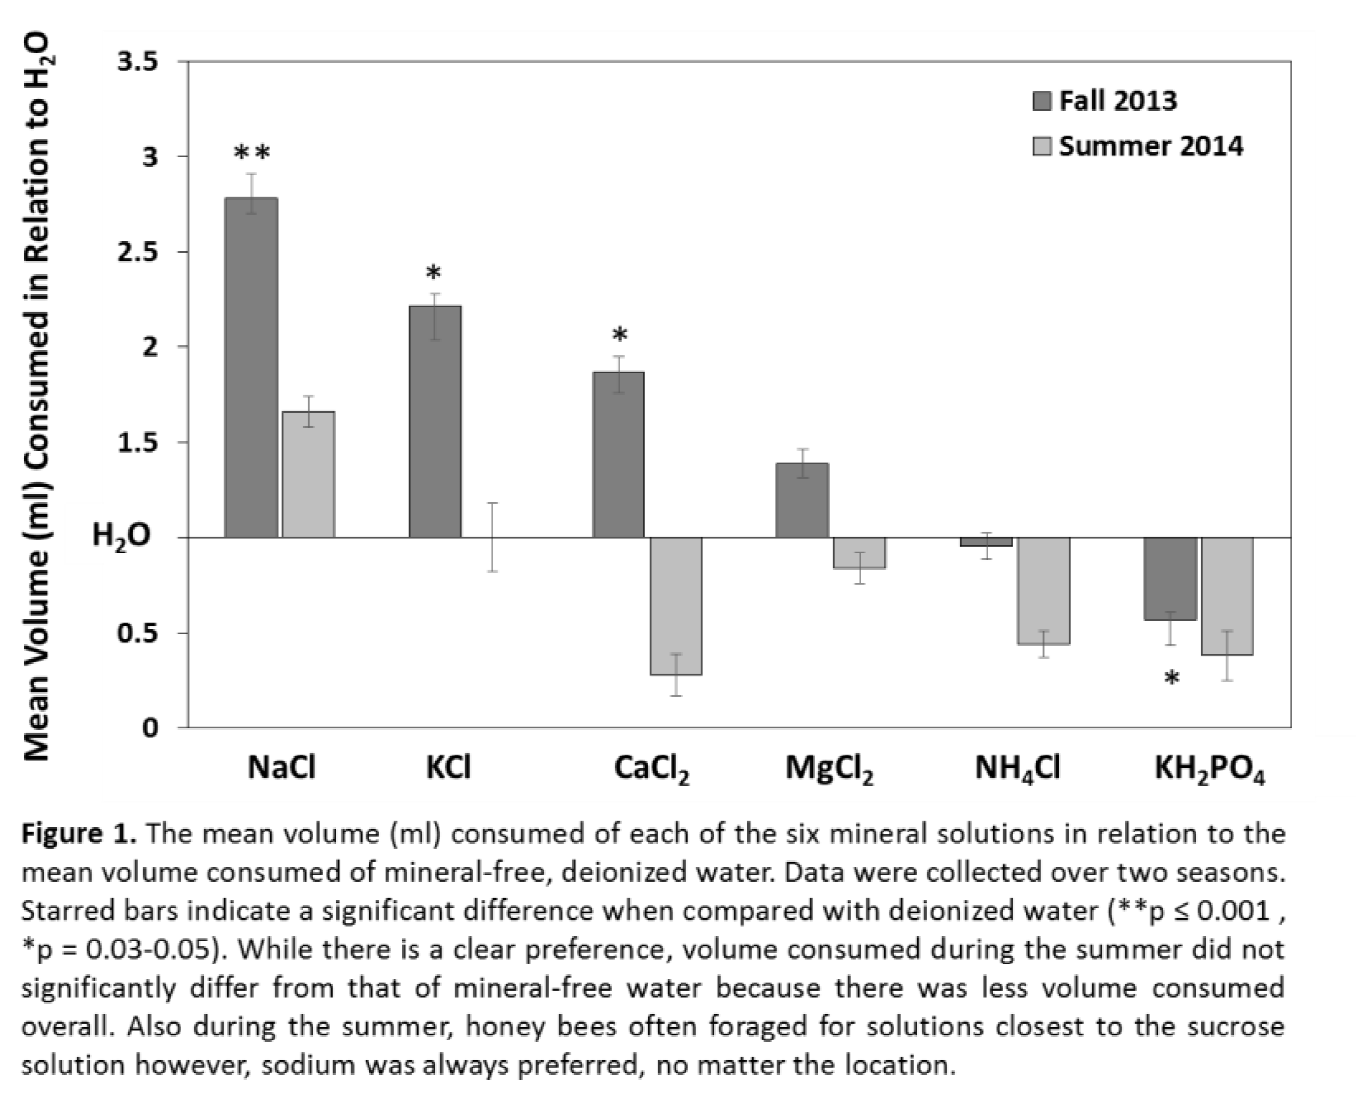 Chart - Mean Volume Consumed in Relation to H2O